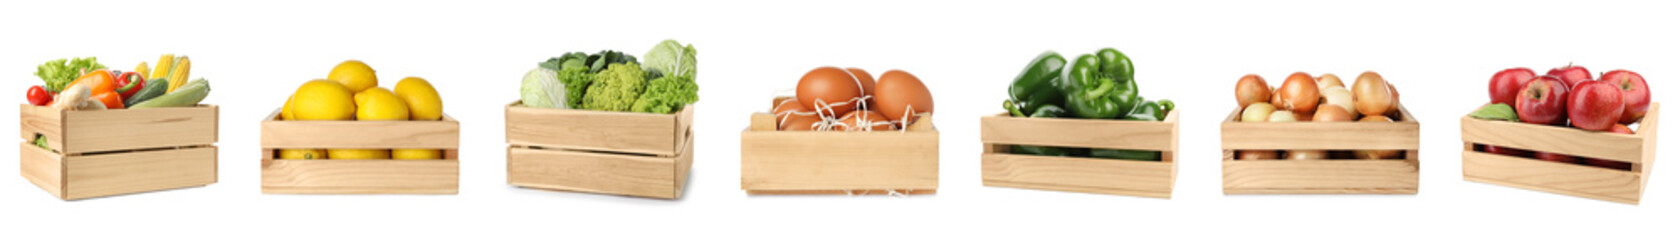 Foto op Canvas Keuken Set of wooden crates with fruits, vegetables and eggs on white background